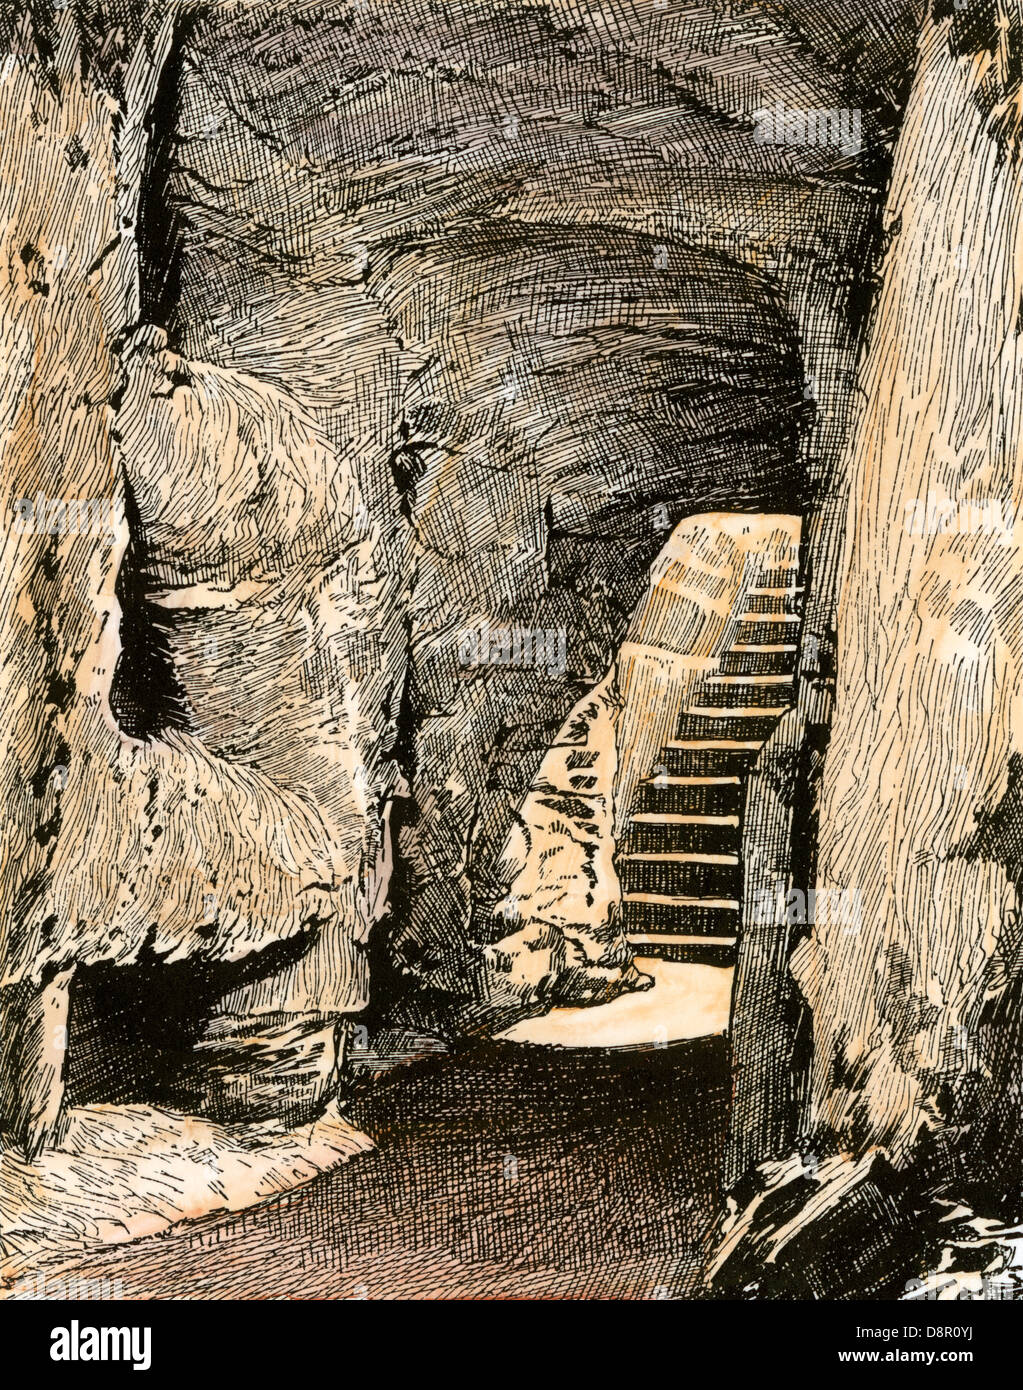 Entrance to the Catacombs of Rome, where early Christians were buried. Hand-colored woodcut - Stock Image